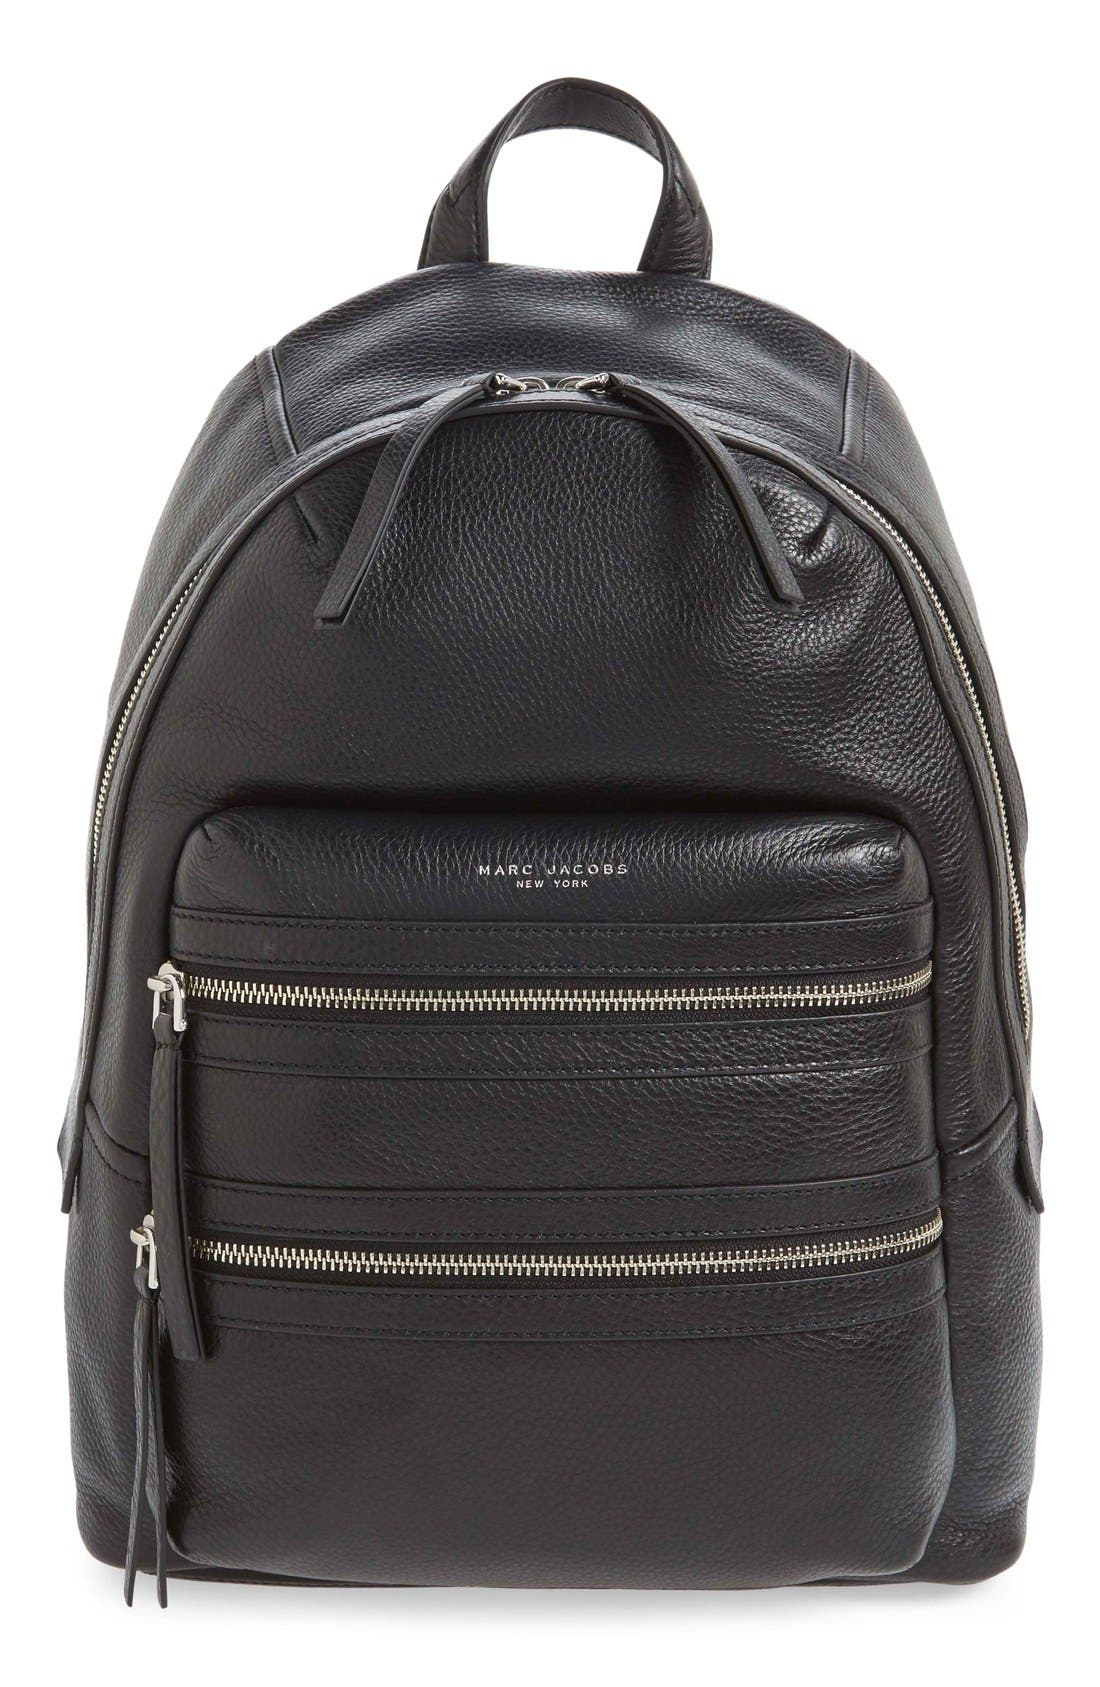 Main Image - MARC JACOBS Large Biker Leather Backpack